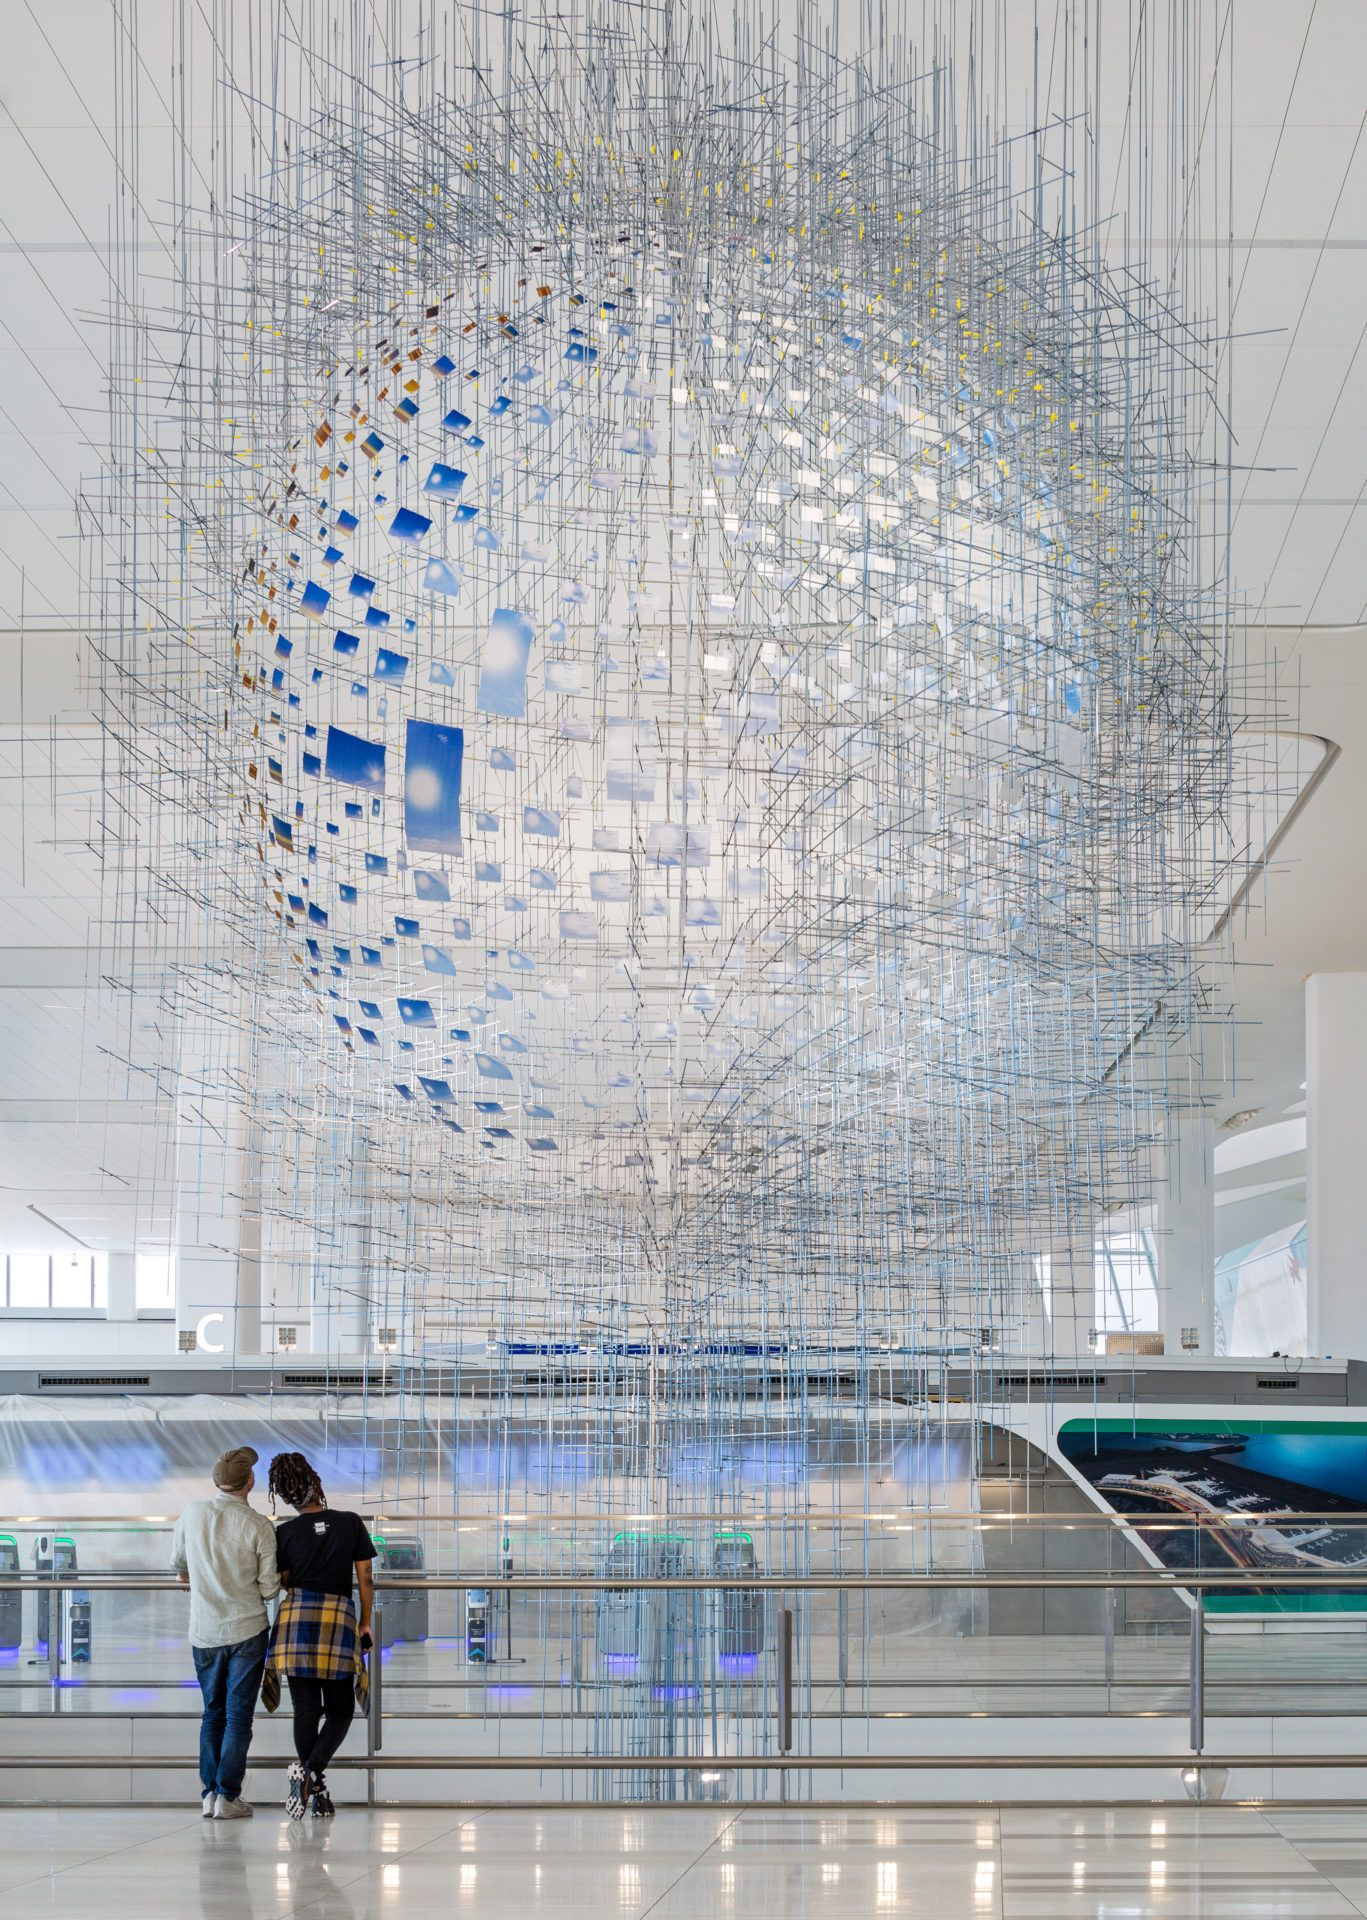 New York Governor Andrew Cuomo Used One Of His Briefings To Unveil A New Set Of Public Artworks At Laguardia Airport In 2020 Public Art Public Artwork Installation Art